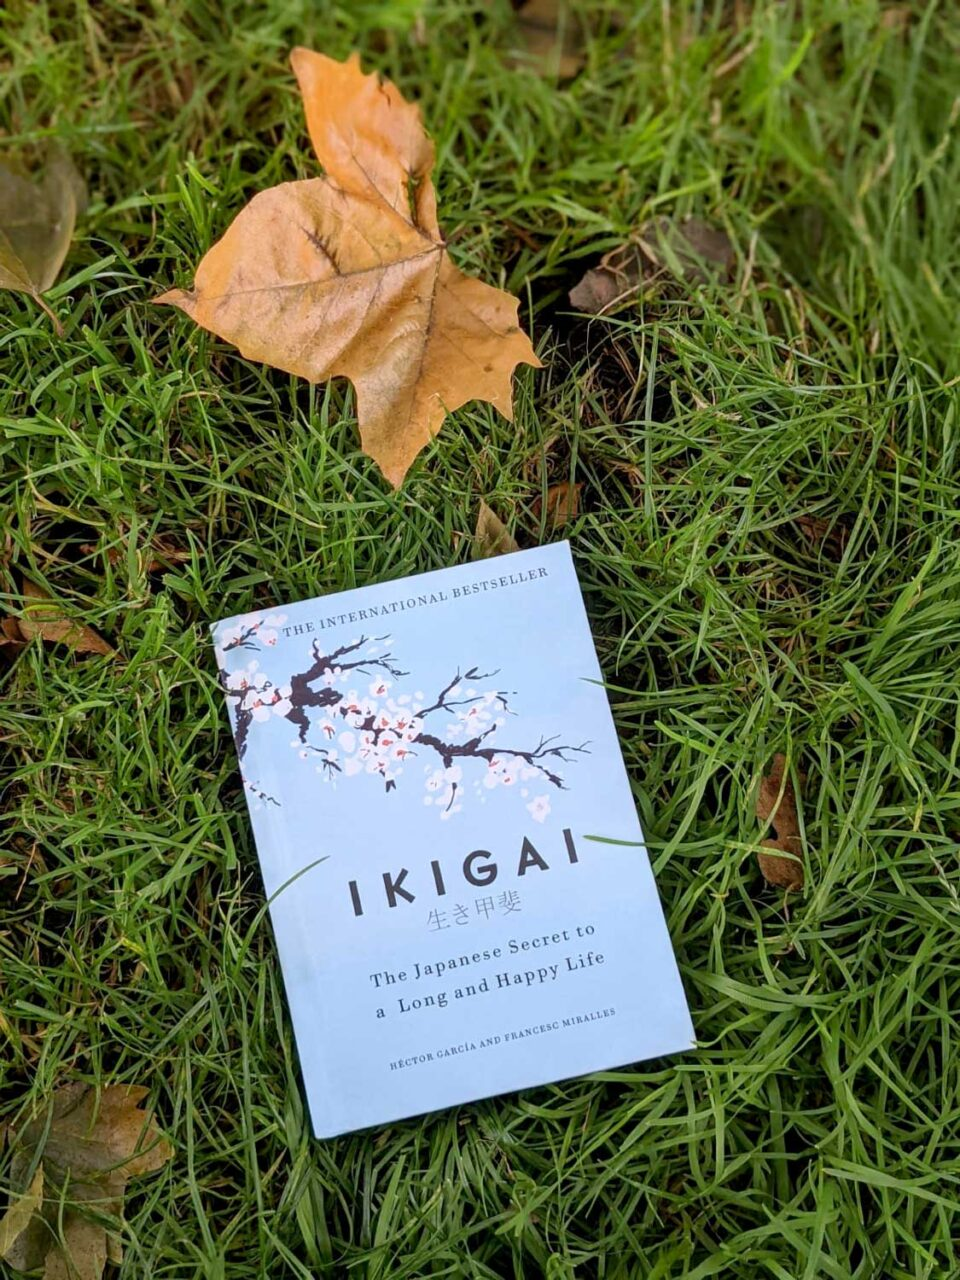 Ikigai-the japanese secret to a long and happy life